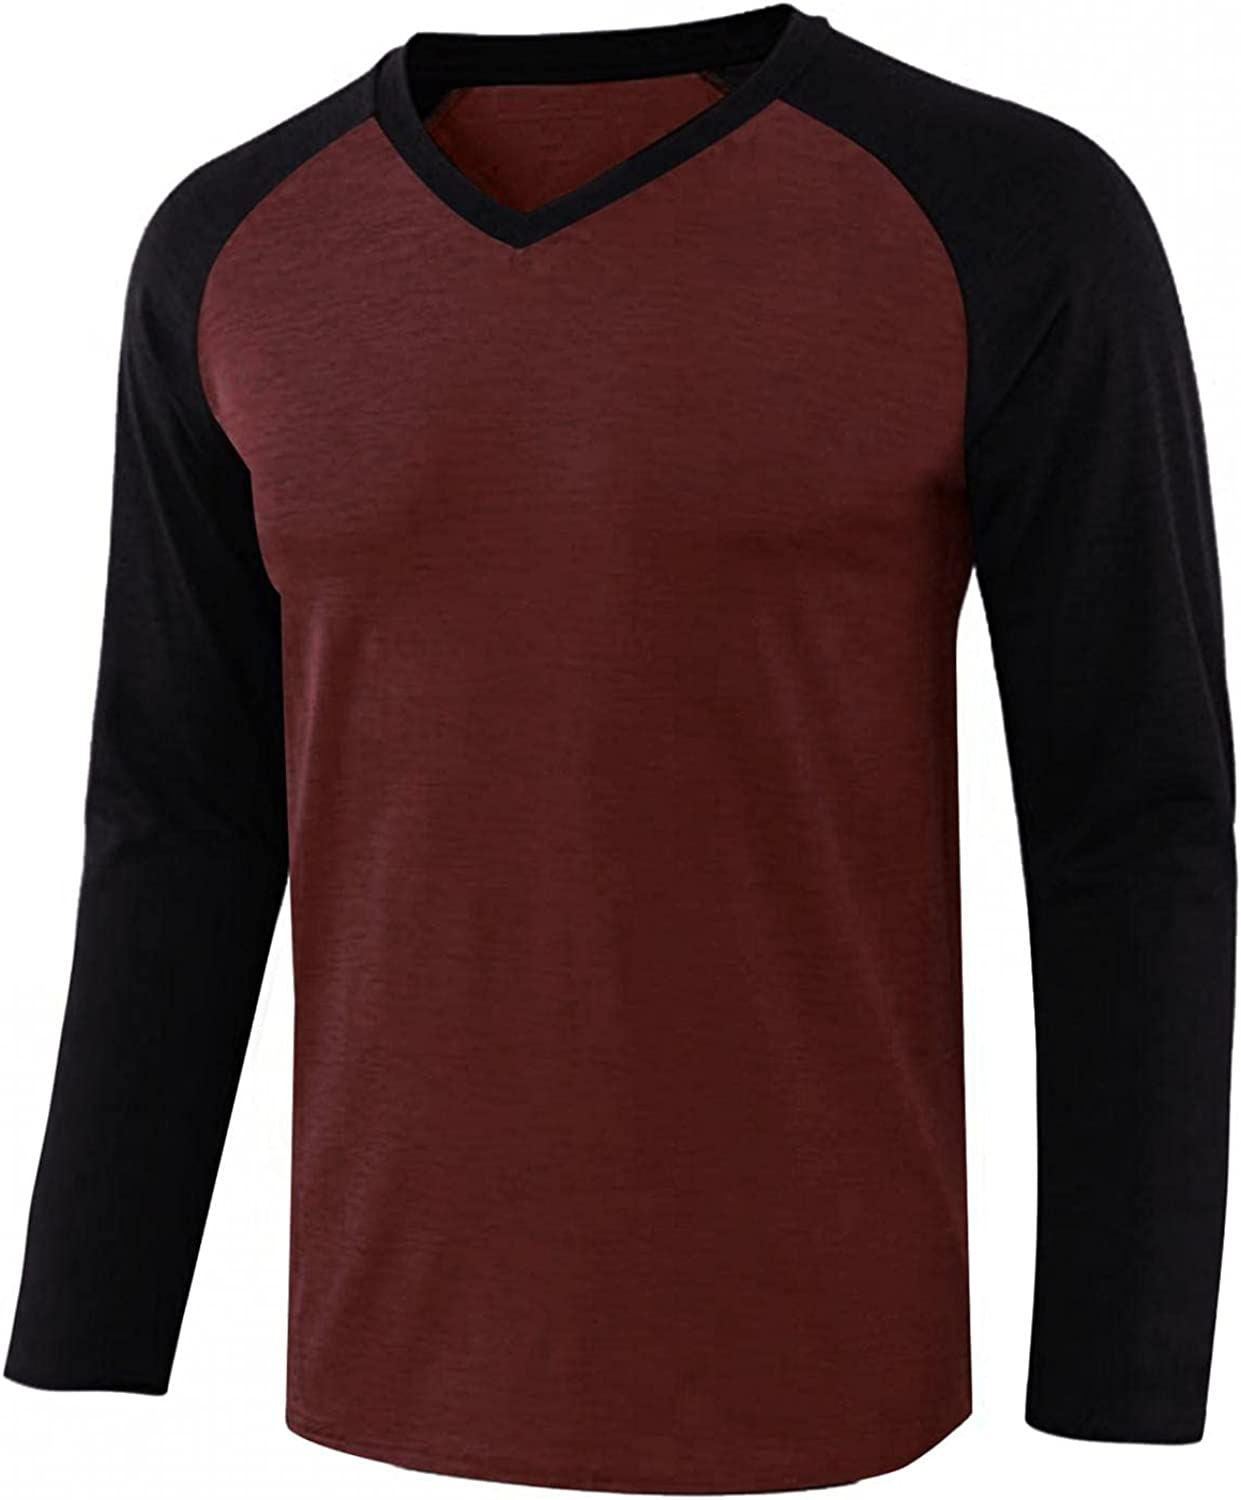 WoCoo Mens Pullover T-Shirt Long Sleeve Patchwork V-Neck Tops Lightweight Breathable Top Casual Slim Fit Blouse